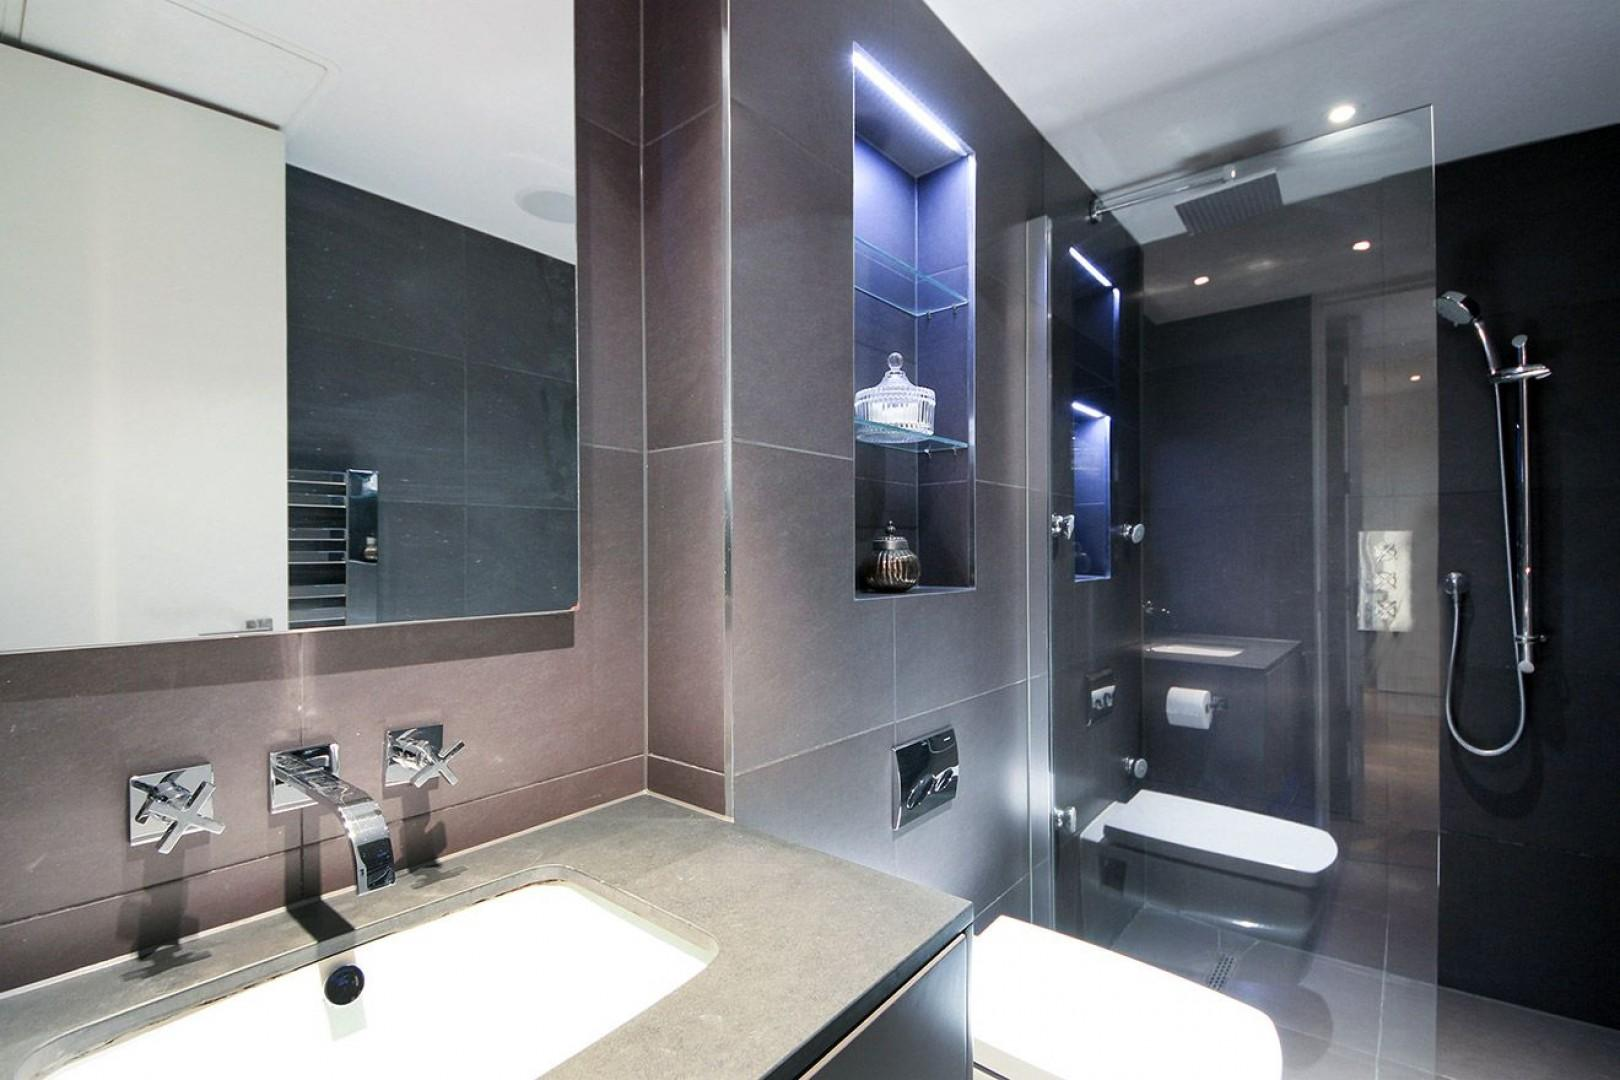 Modern finishes in the bathroom